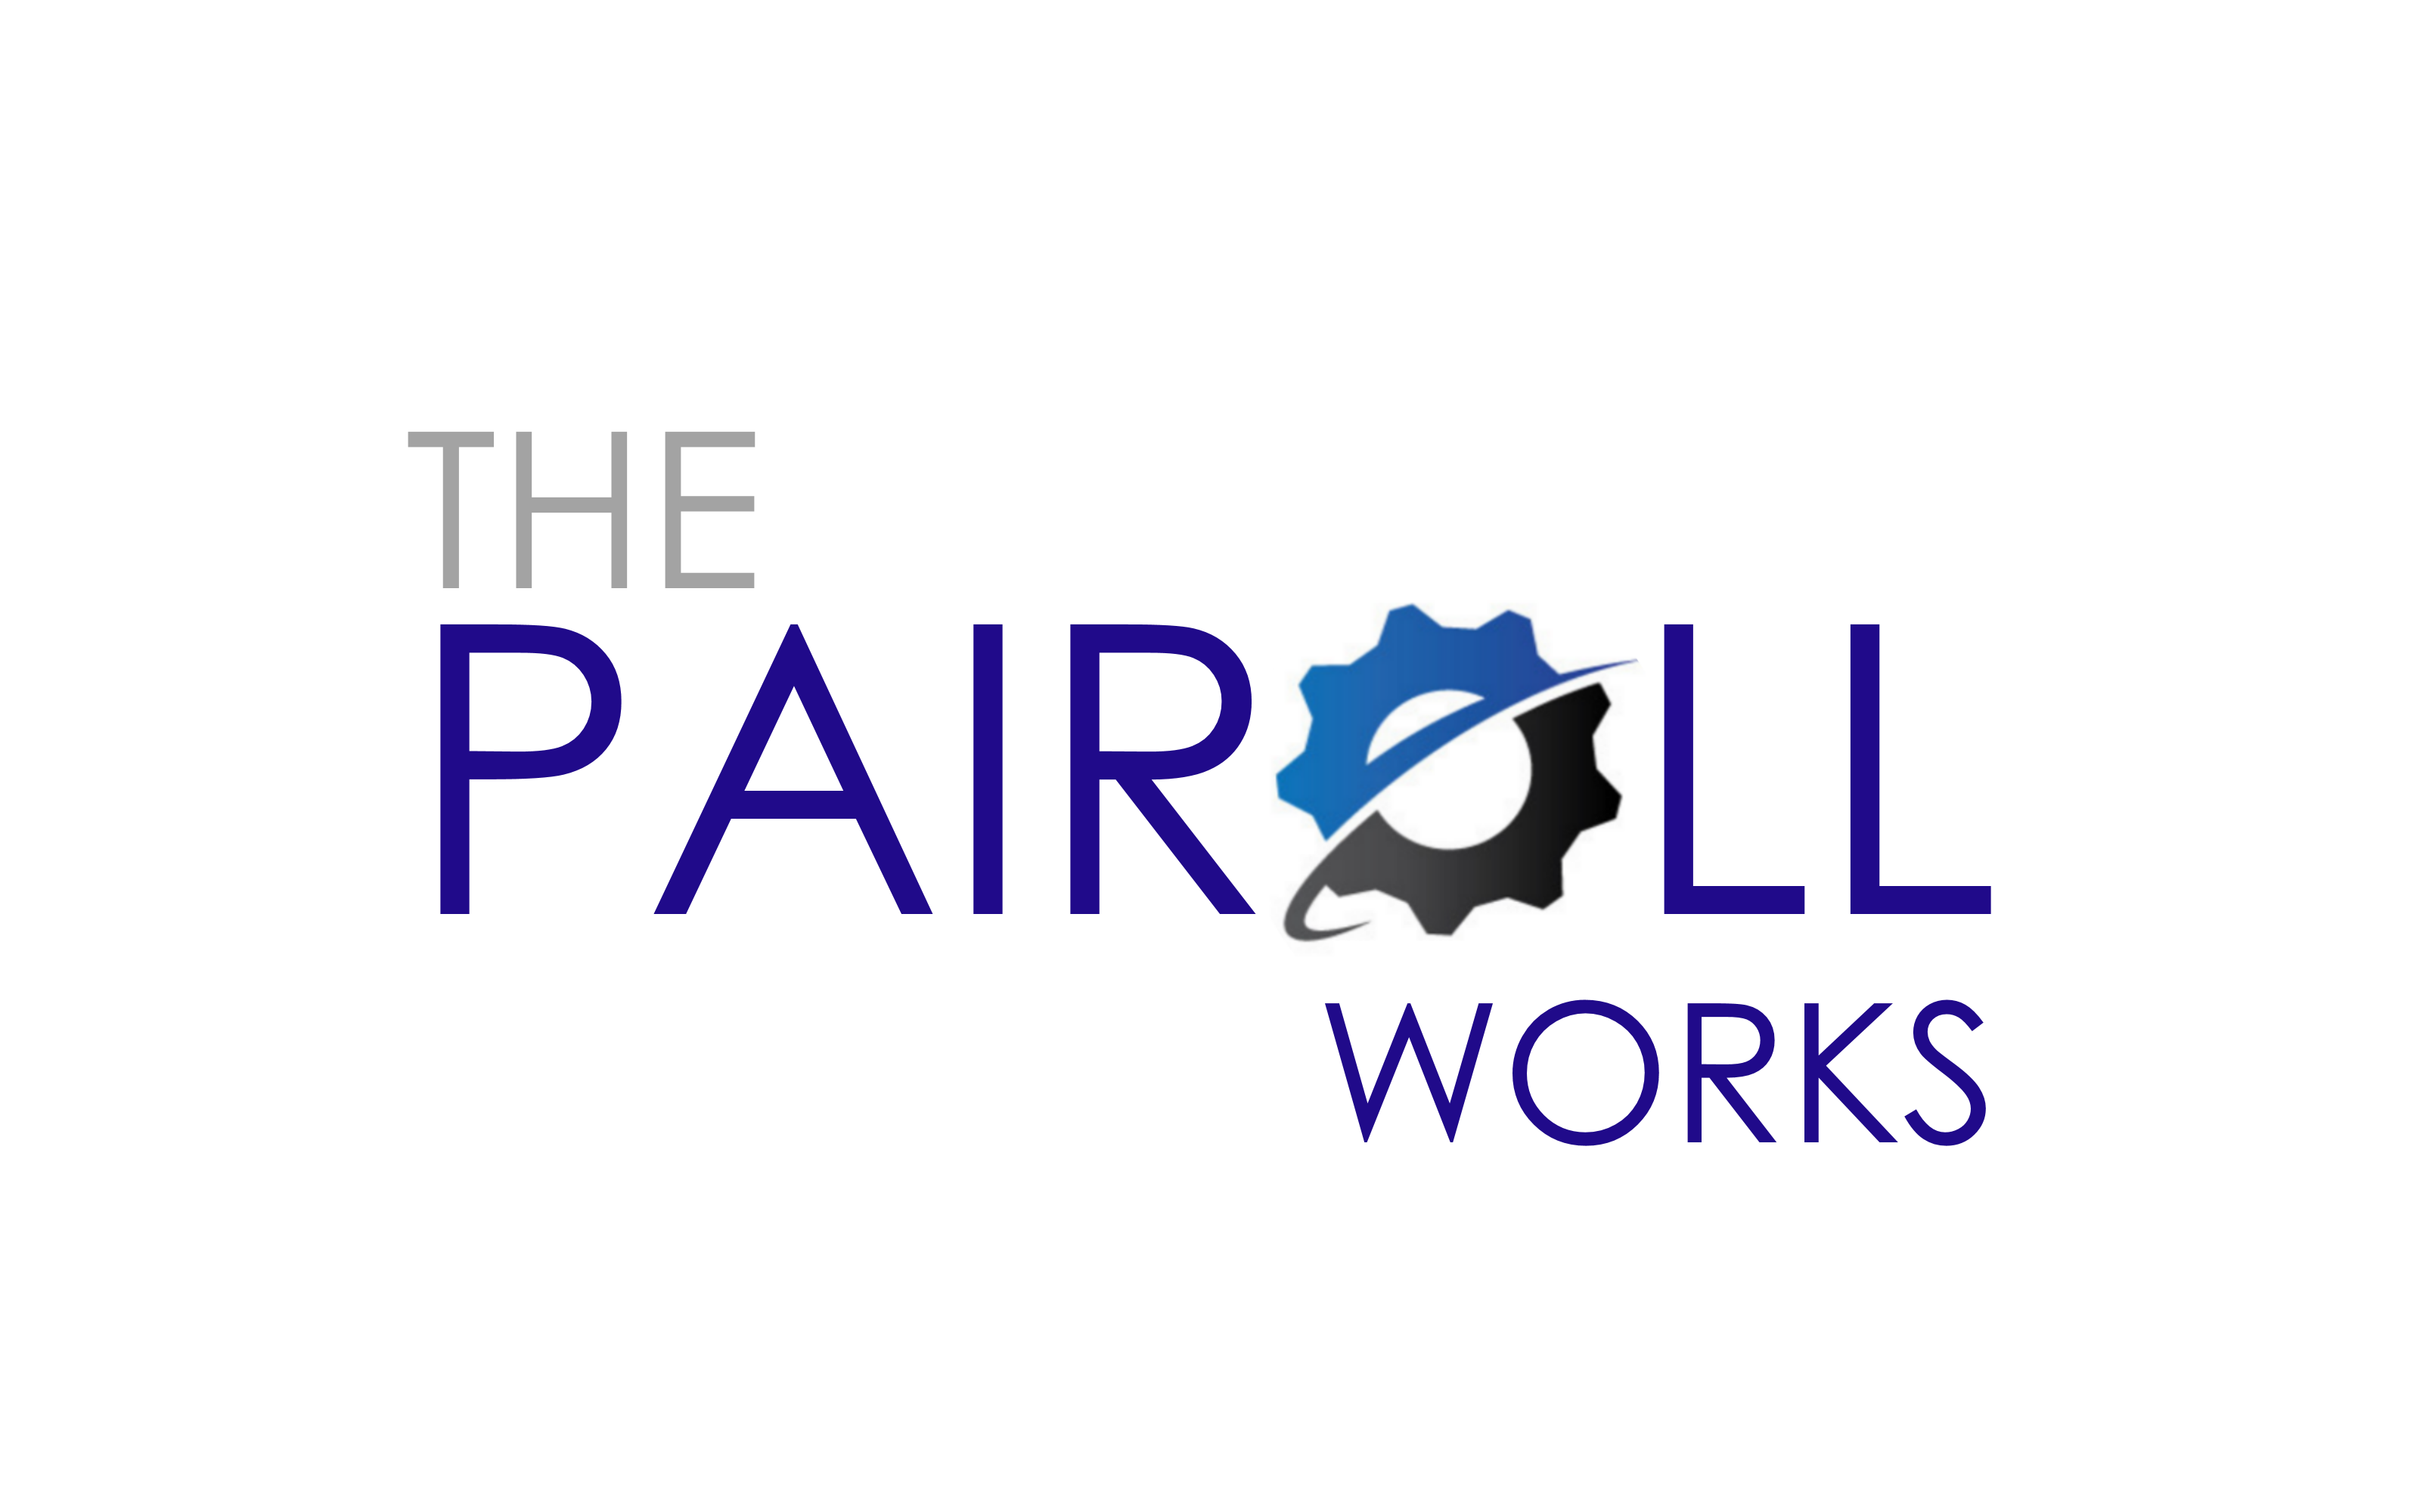 Logo Design by Roberto Bassi - Entry No. 134 in the Logo Design Contest Captivating Logo Design for The Payroll Works.